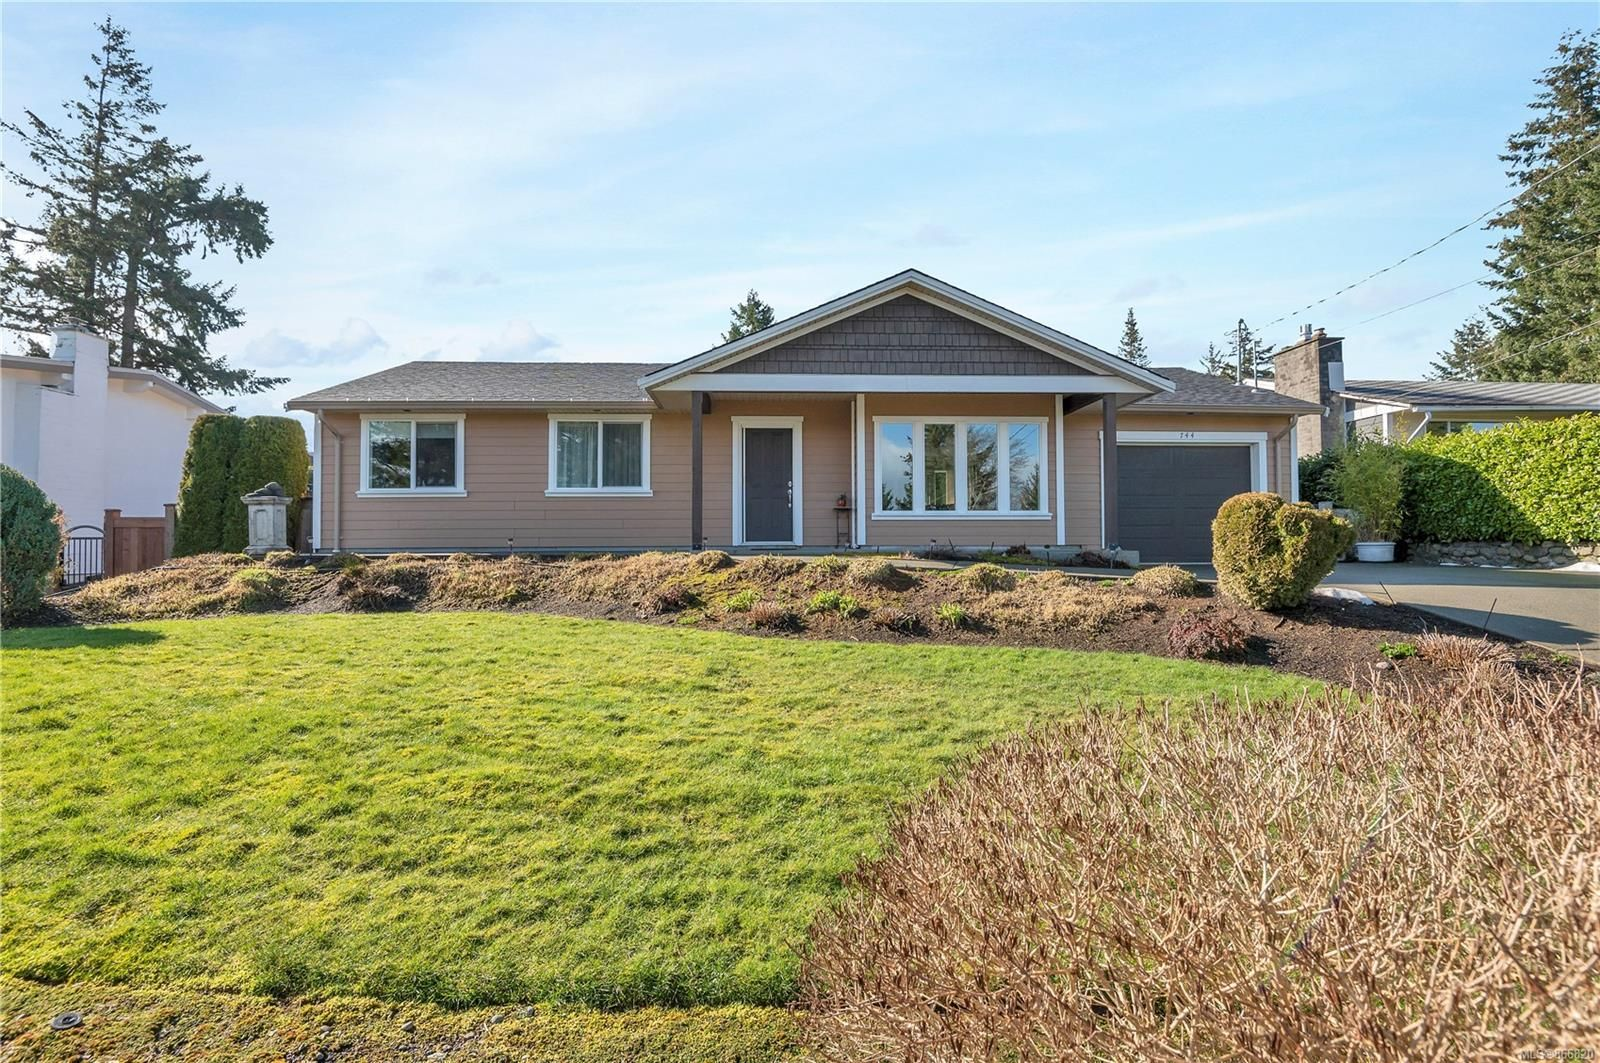 Main Photo: 744 Nancy Greene Dr in : CR Campbell River Central House for sale (Campbell River)  : MLS®# 866820